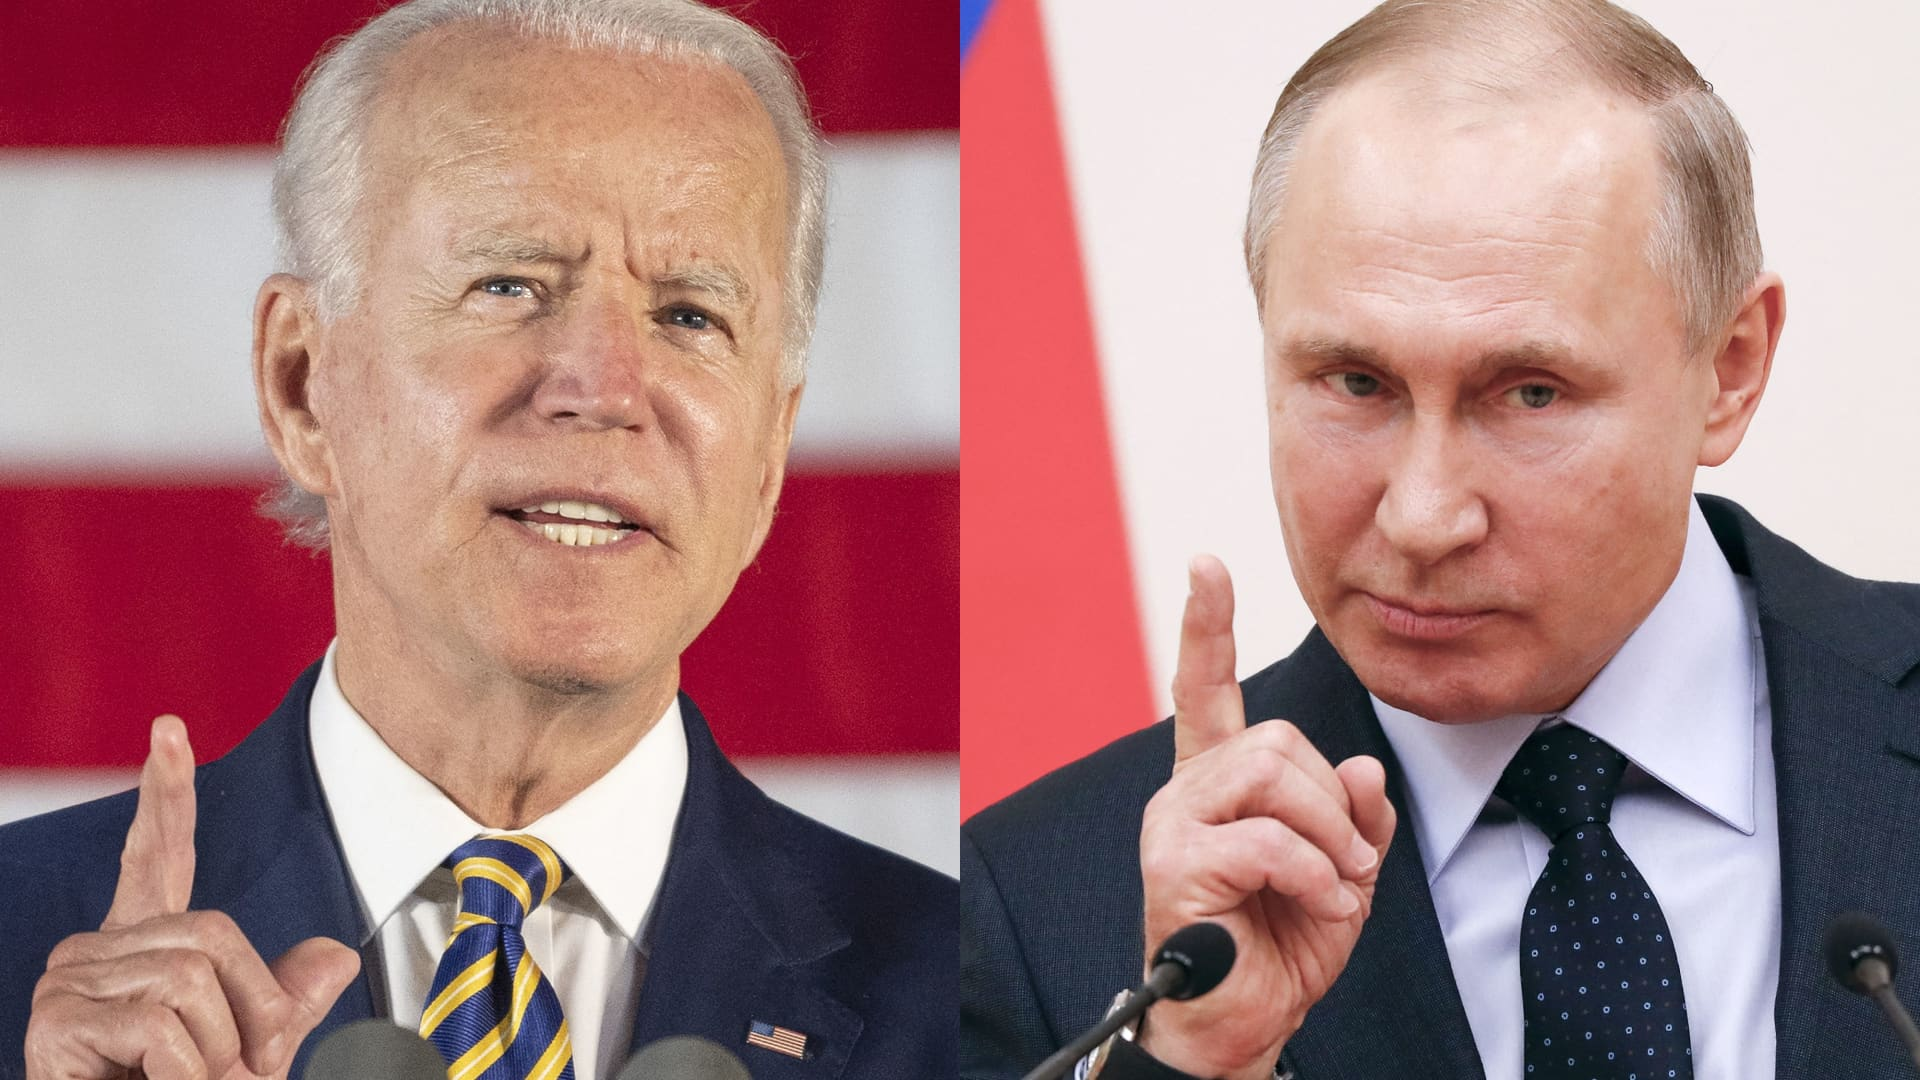 This combination of files pictures created on June 7, 2021 shows then Democratic presidential candidate Joe Biden speaking about reopening the country during a speech in Darby, Pennsylvania, on June 17, 2020 and Russian President Vladimir Putin delivering a speech during a meeting with Russian athletes and team members, who will take part in the upcoming 2018 Pyeongchang Winter Olympic Games, at the Novo-Ogaryovo state residence outside Moscow on January 31, 2018.